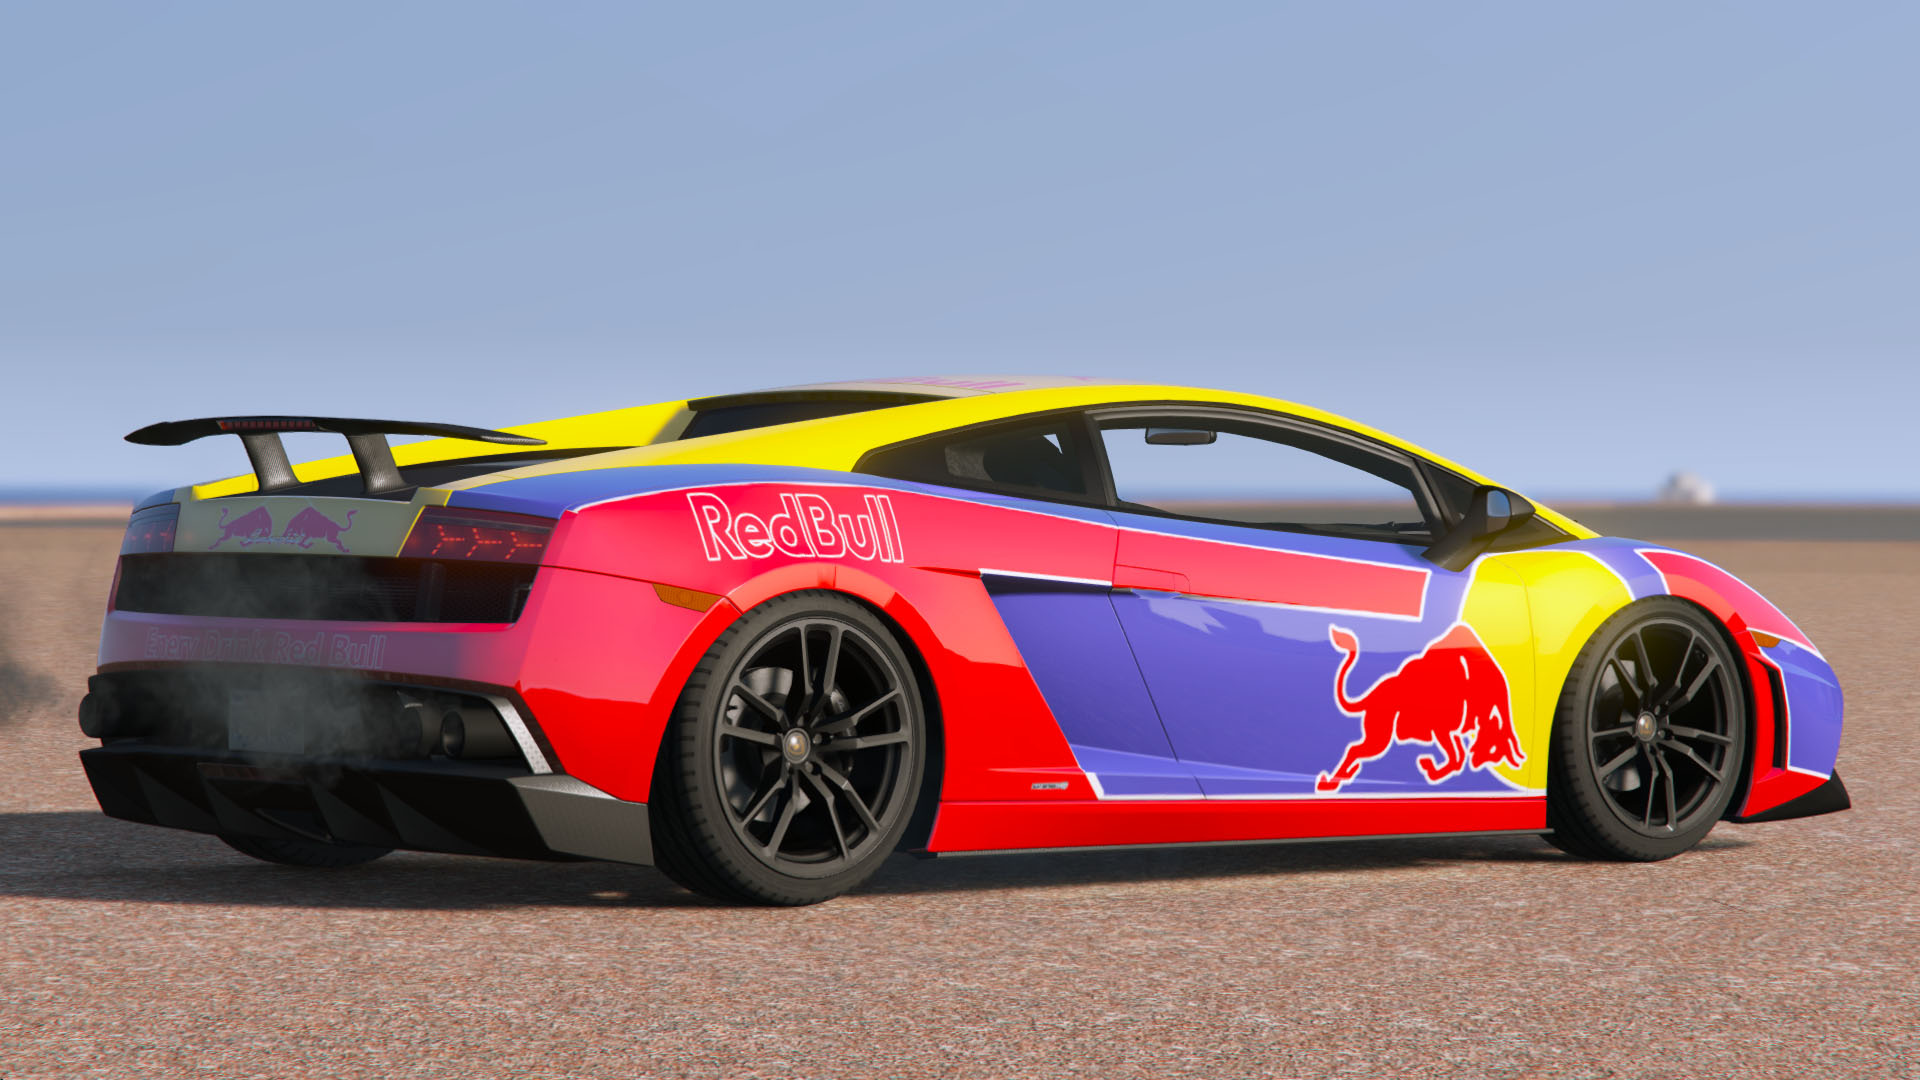 red bull livery lamborghini gallardo lp570 4 superleggera 2011 gta5. Black Bedroom Furniture Sets. Home Design Ideas